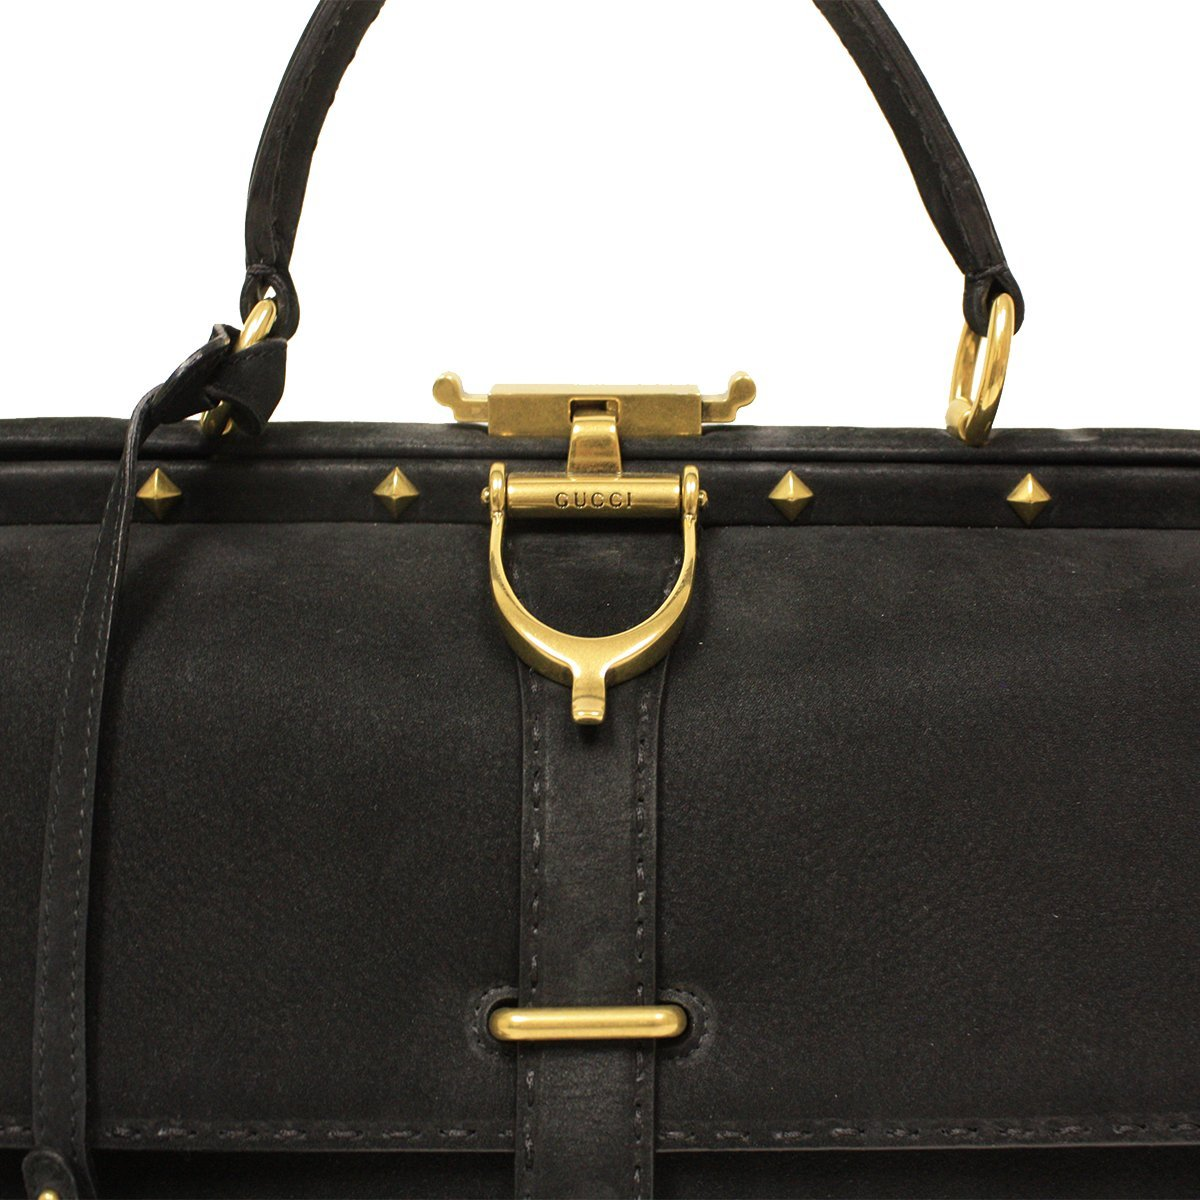 02b9c7838cb6 Amazon.com: Gucci Doctor Lady Stirrup Range Suede Leather Doctor Bag  303885: Shoes